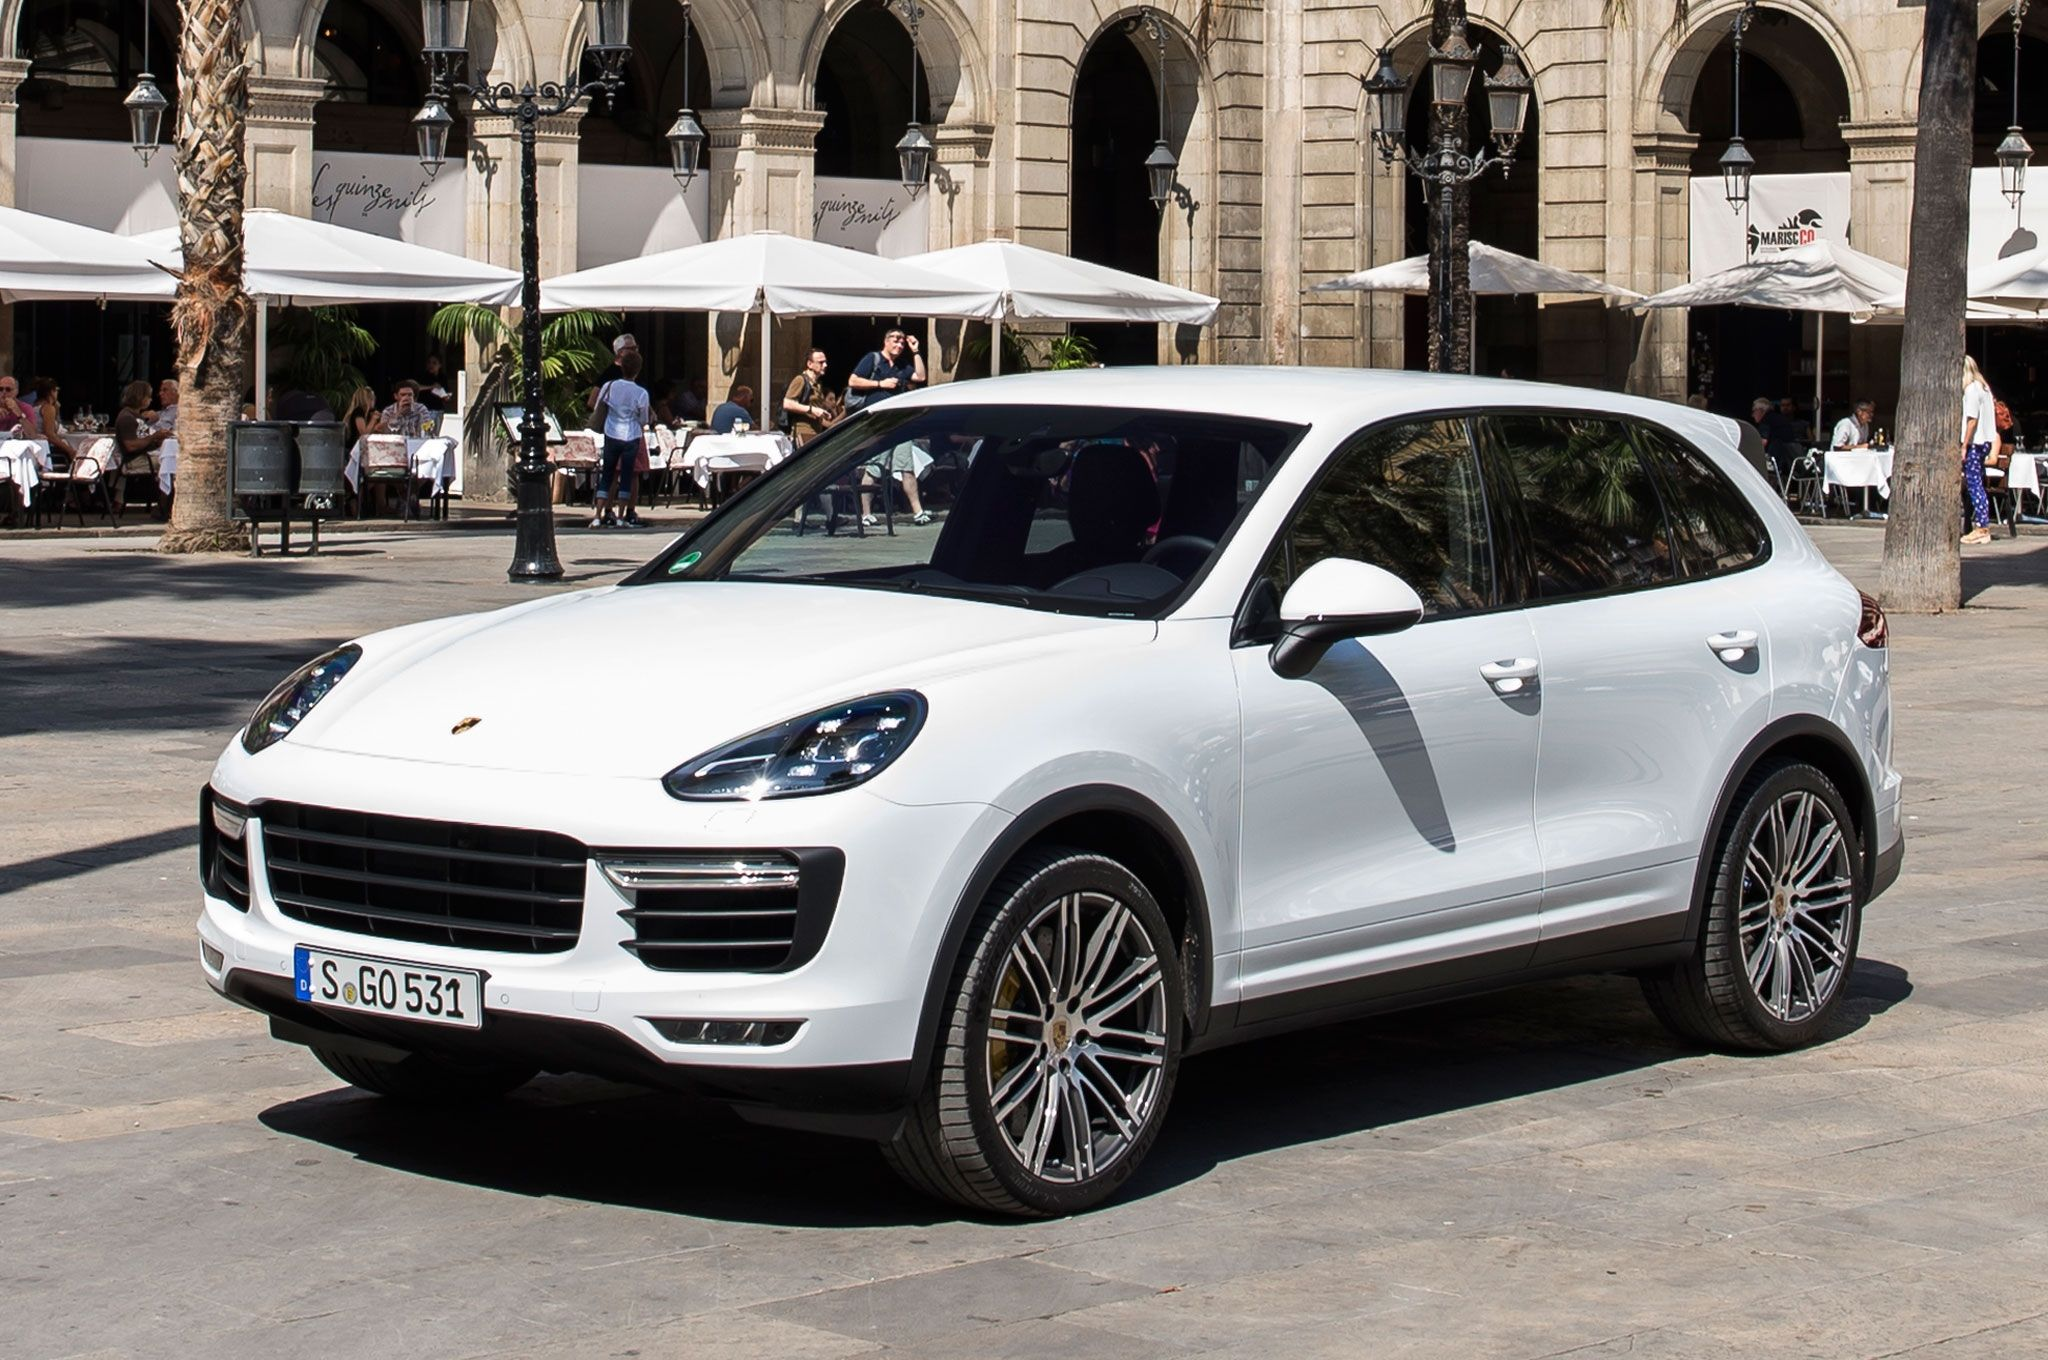 2016 porsche cayenne turbo s certified jonas best picture collection pinterest cayenne turbo cars and offroad